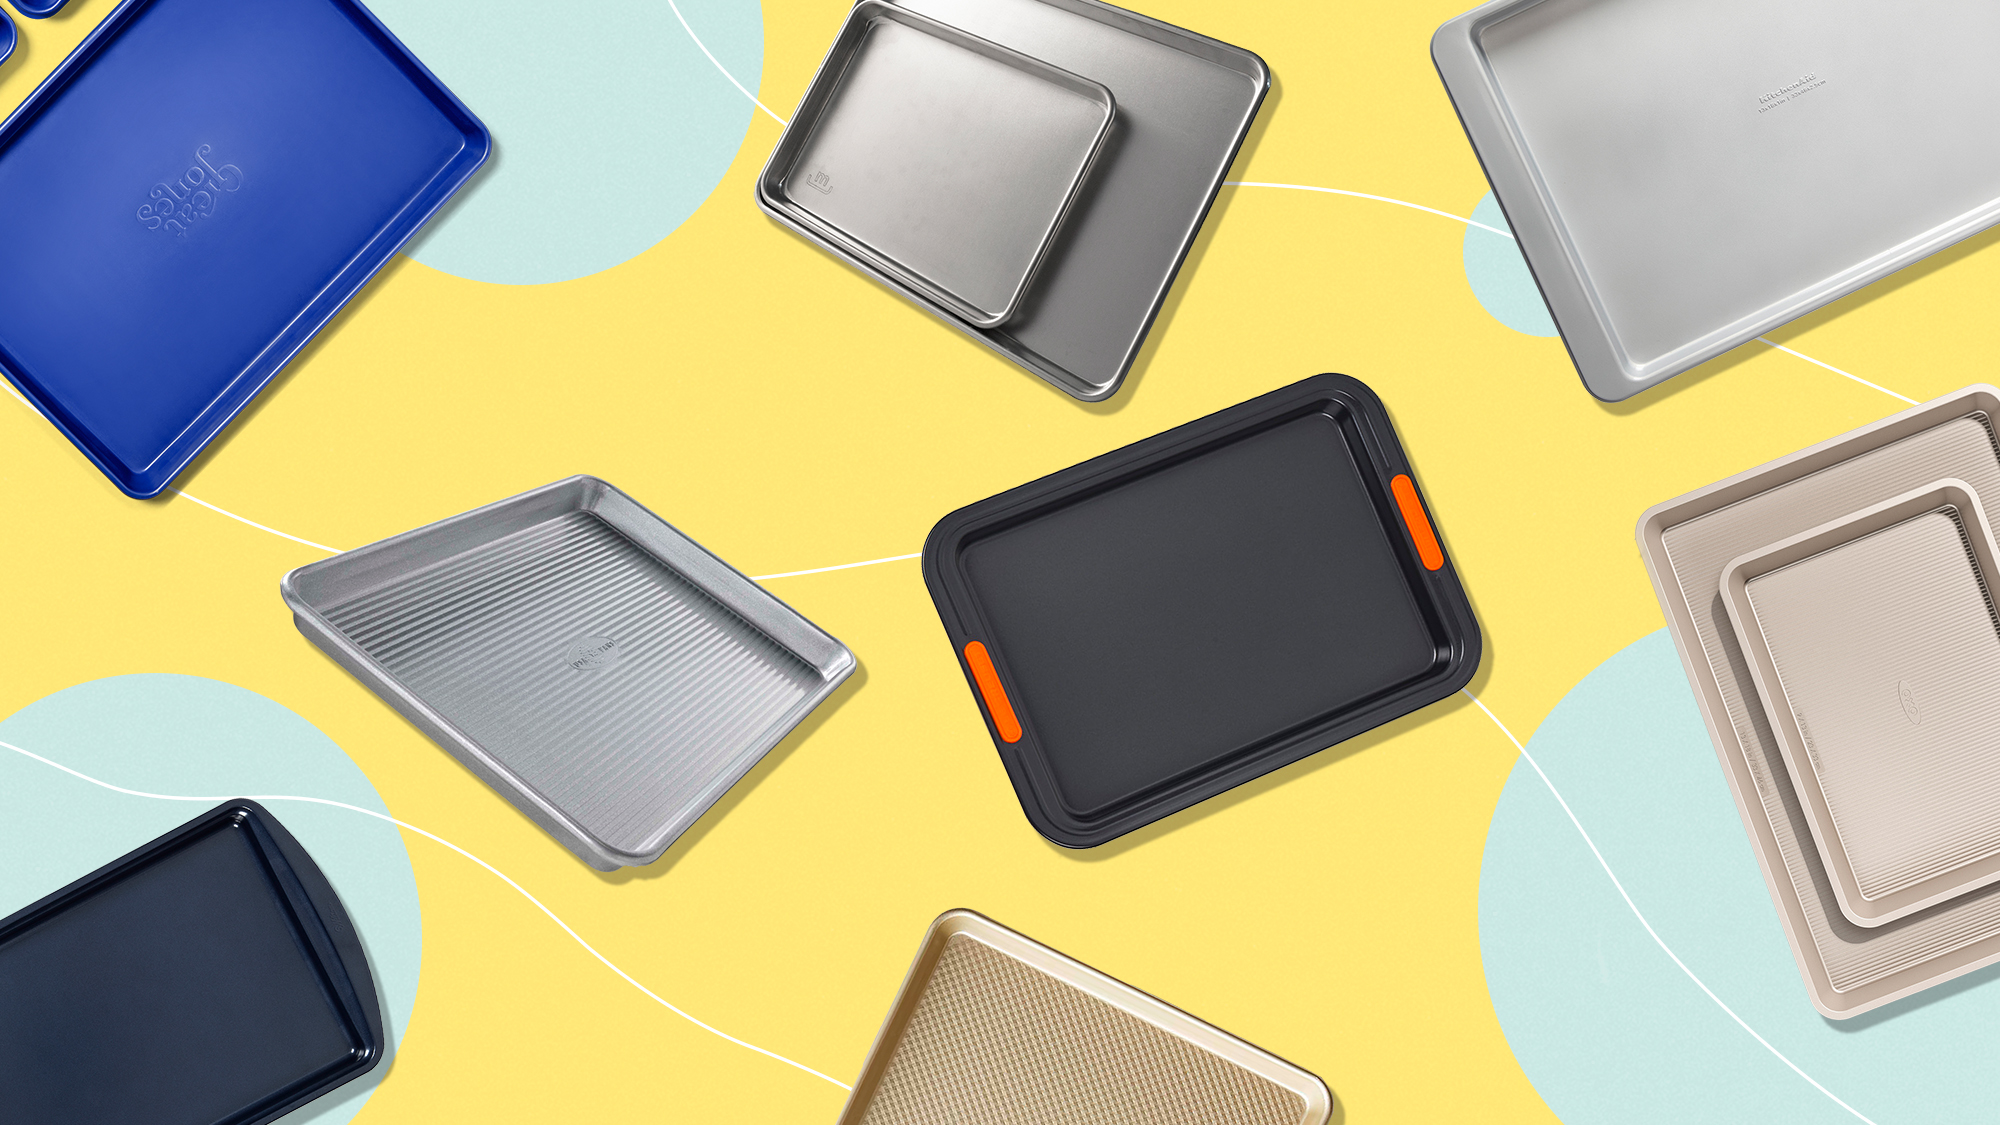 A selection of different sheet pans on a designed background